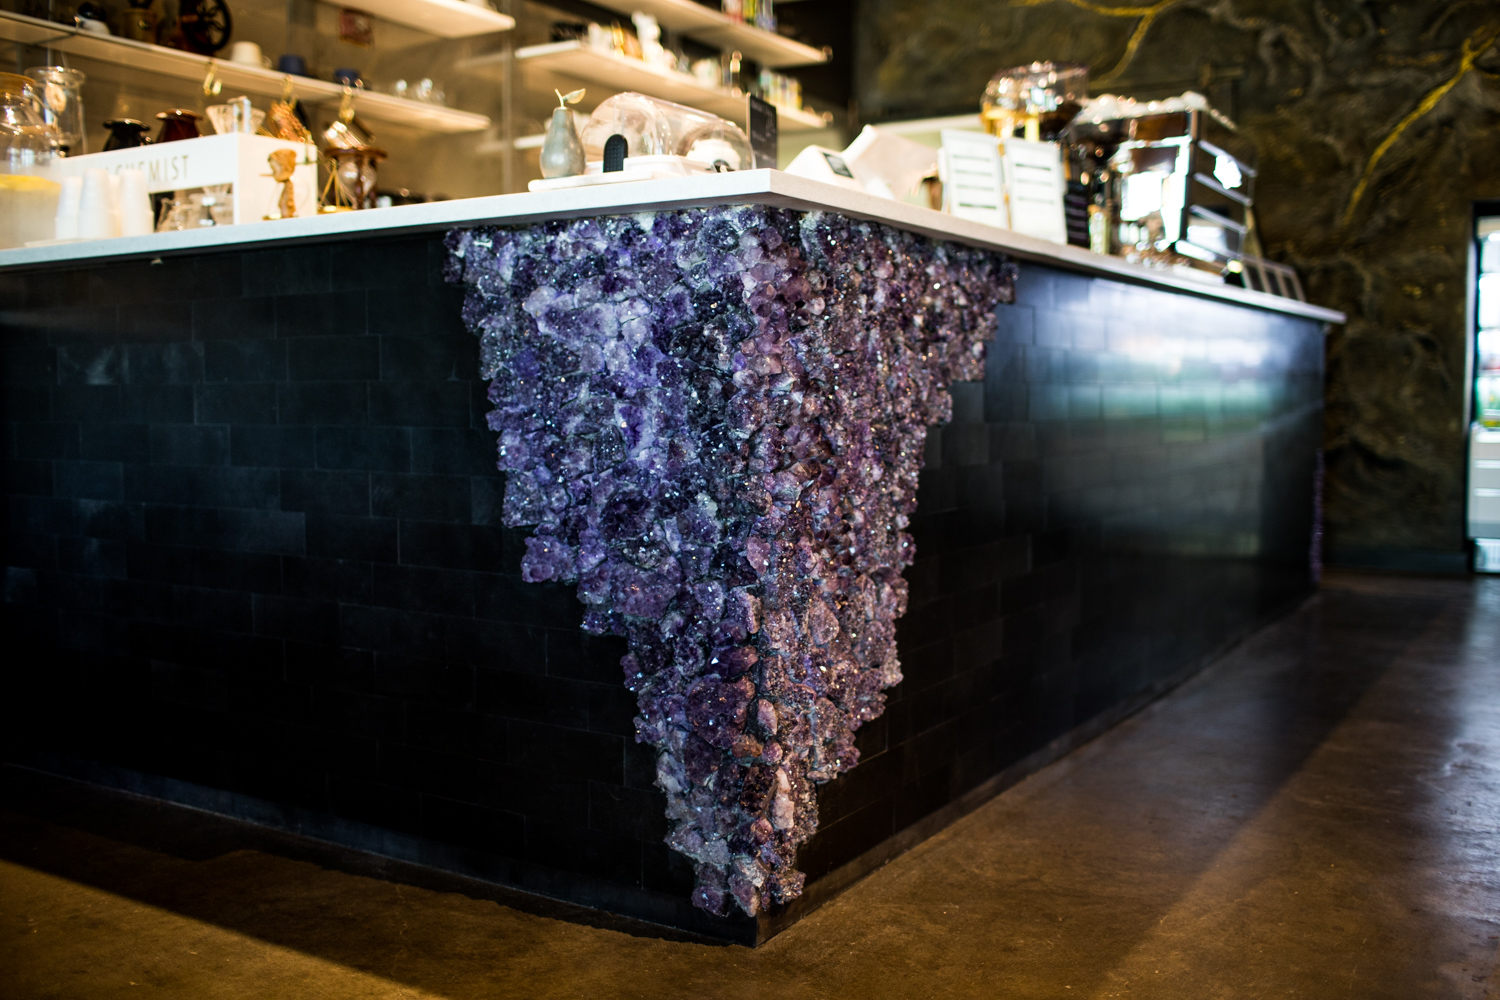 Detail of the amethyst gem at the counter intersection.